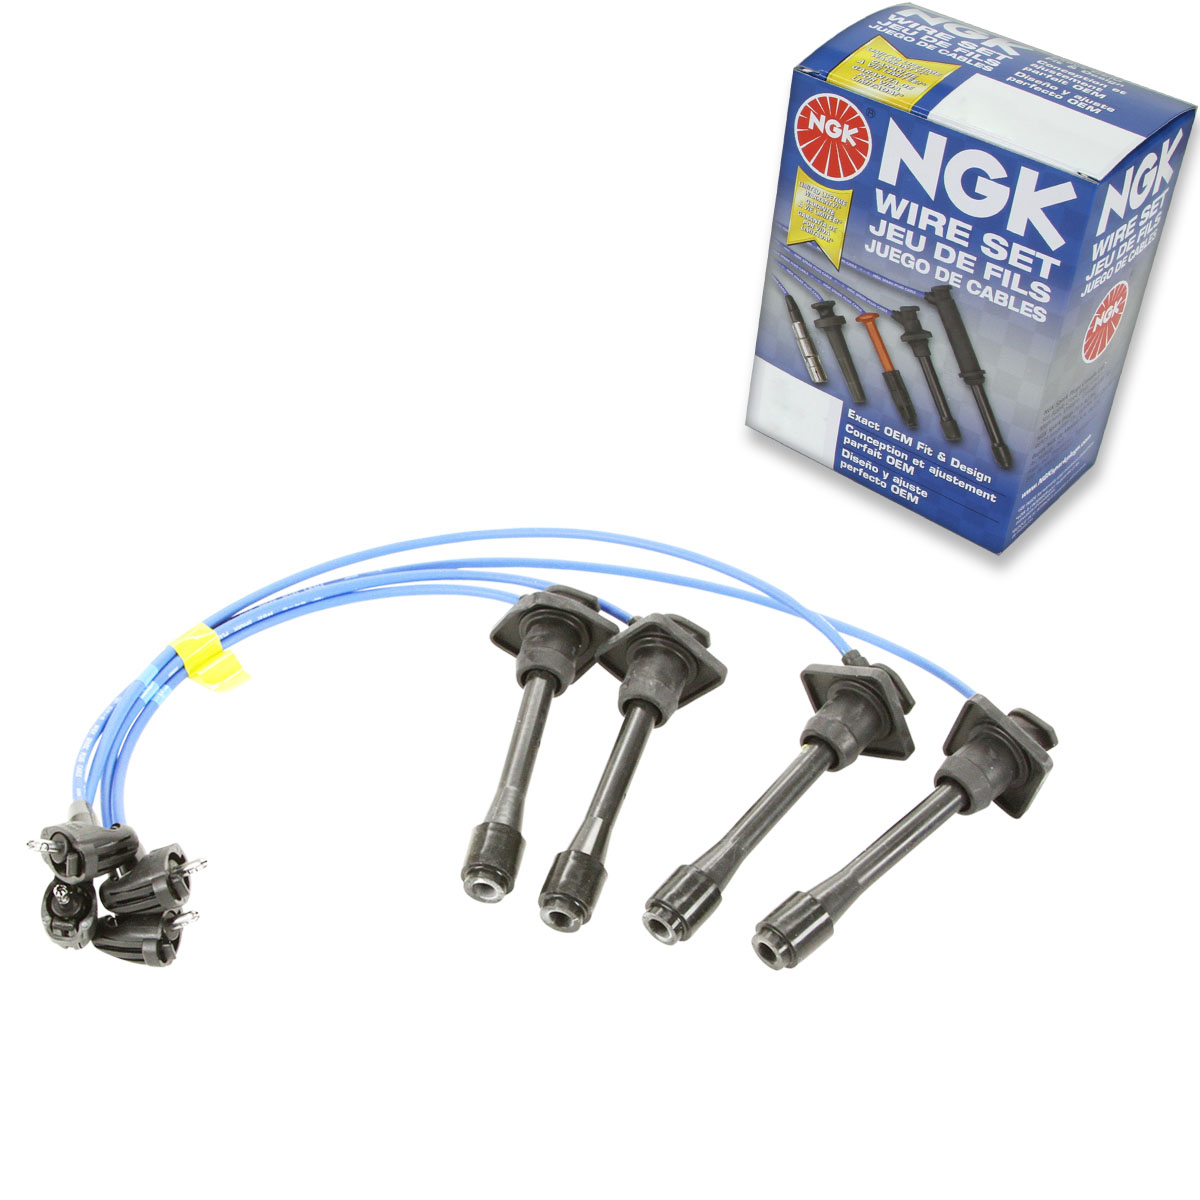 NGK Spark Plug Wires Set of 4 New TE21 for Toyota Corolla Celica Geo